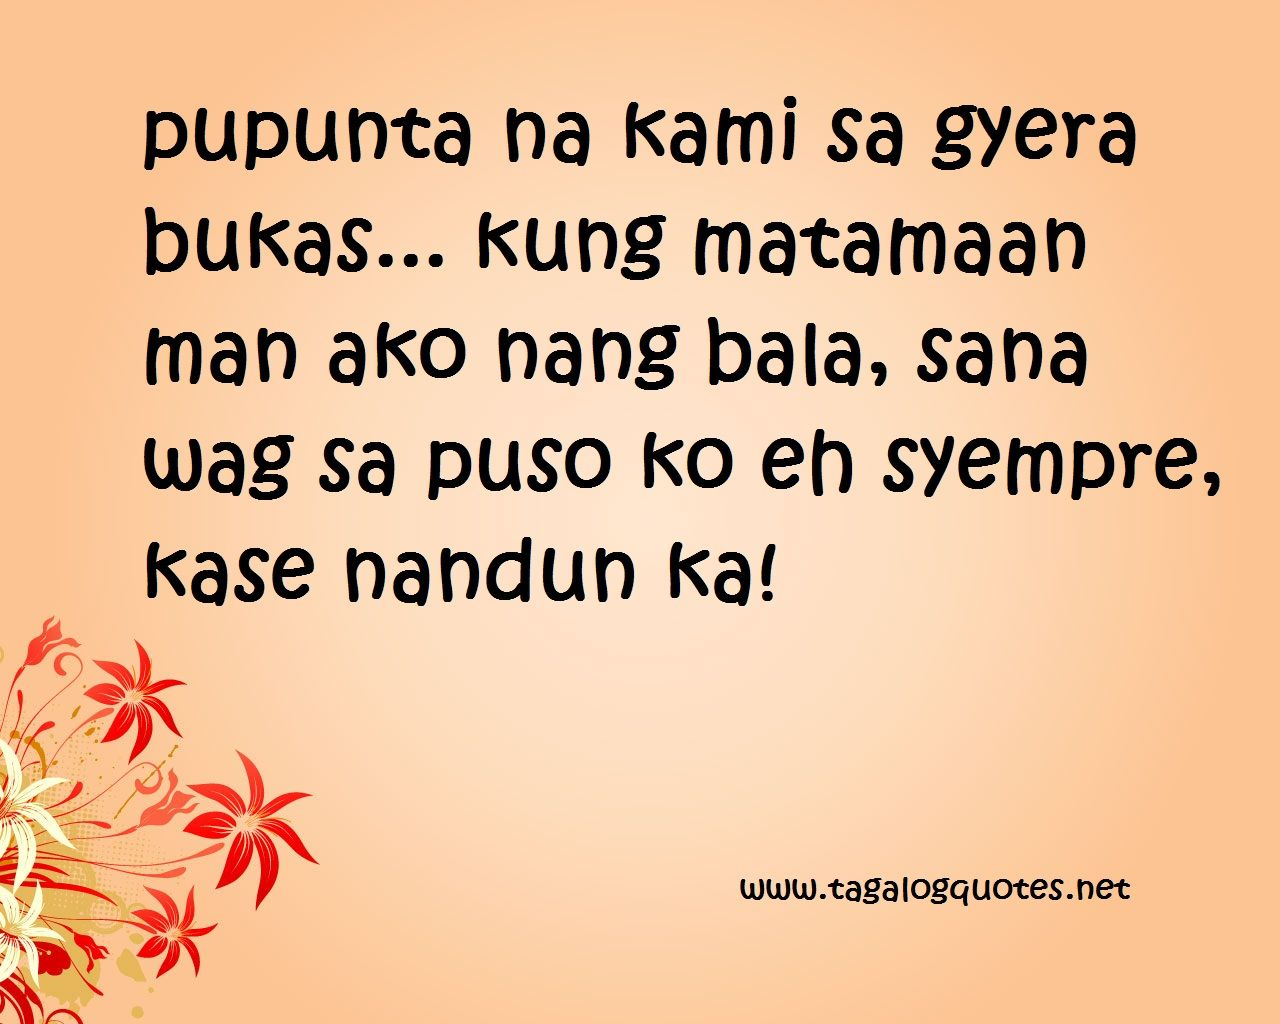 love funny quotes bisaya Tagalog Pick Up Lines pictures